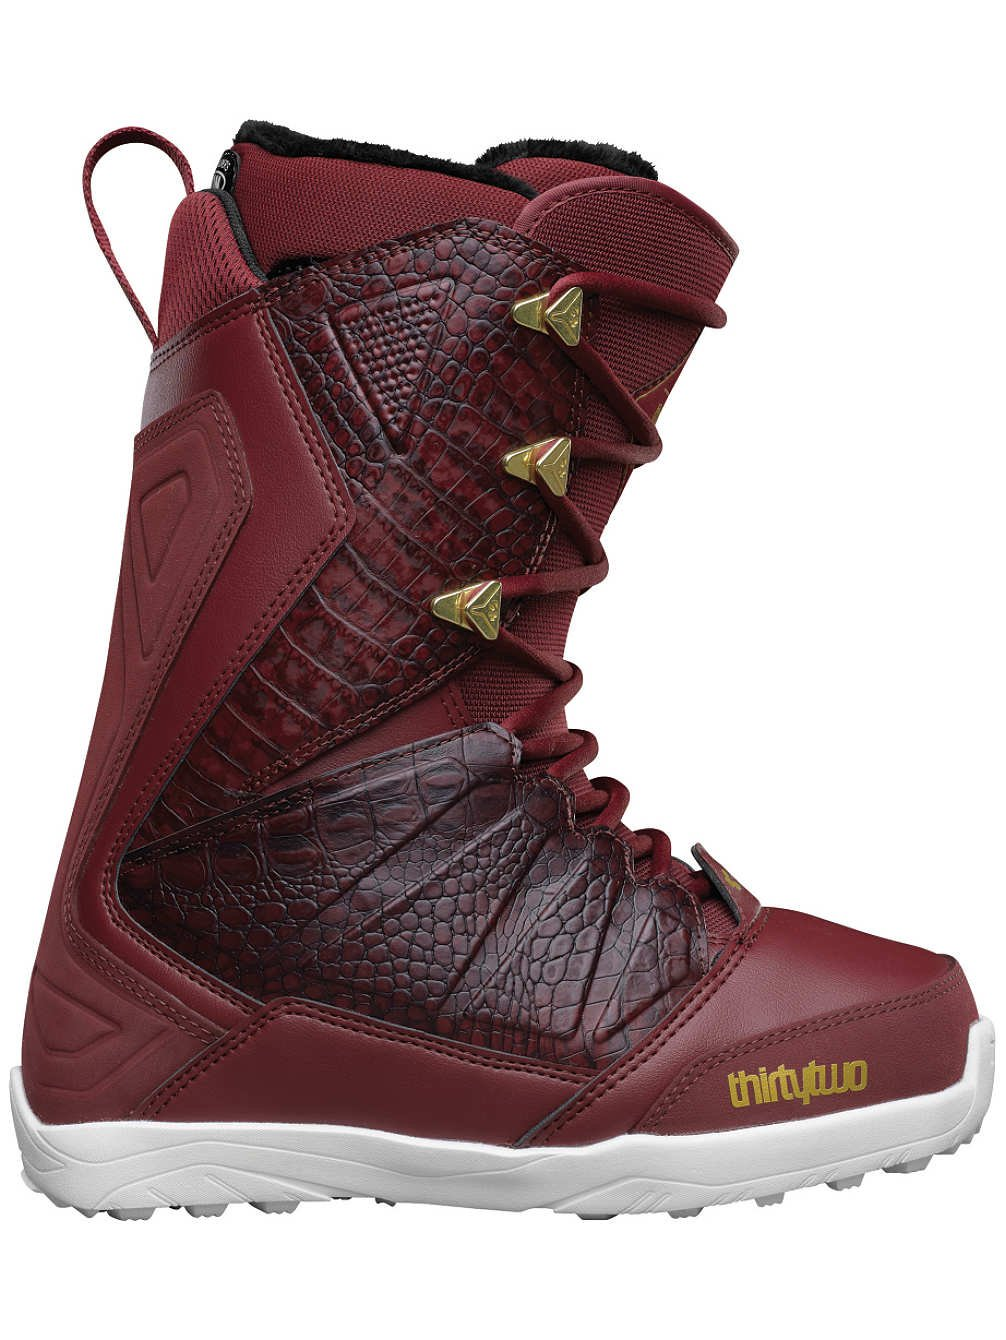 thirtytwo Lashed W's 16' Boots, Burgundy, Size 7.5